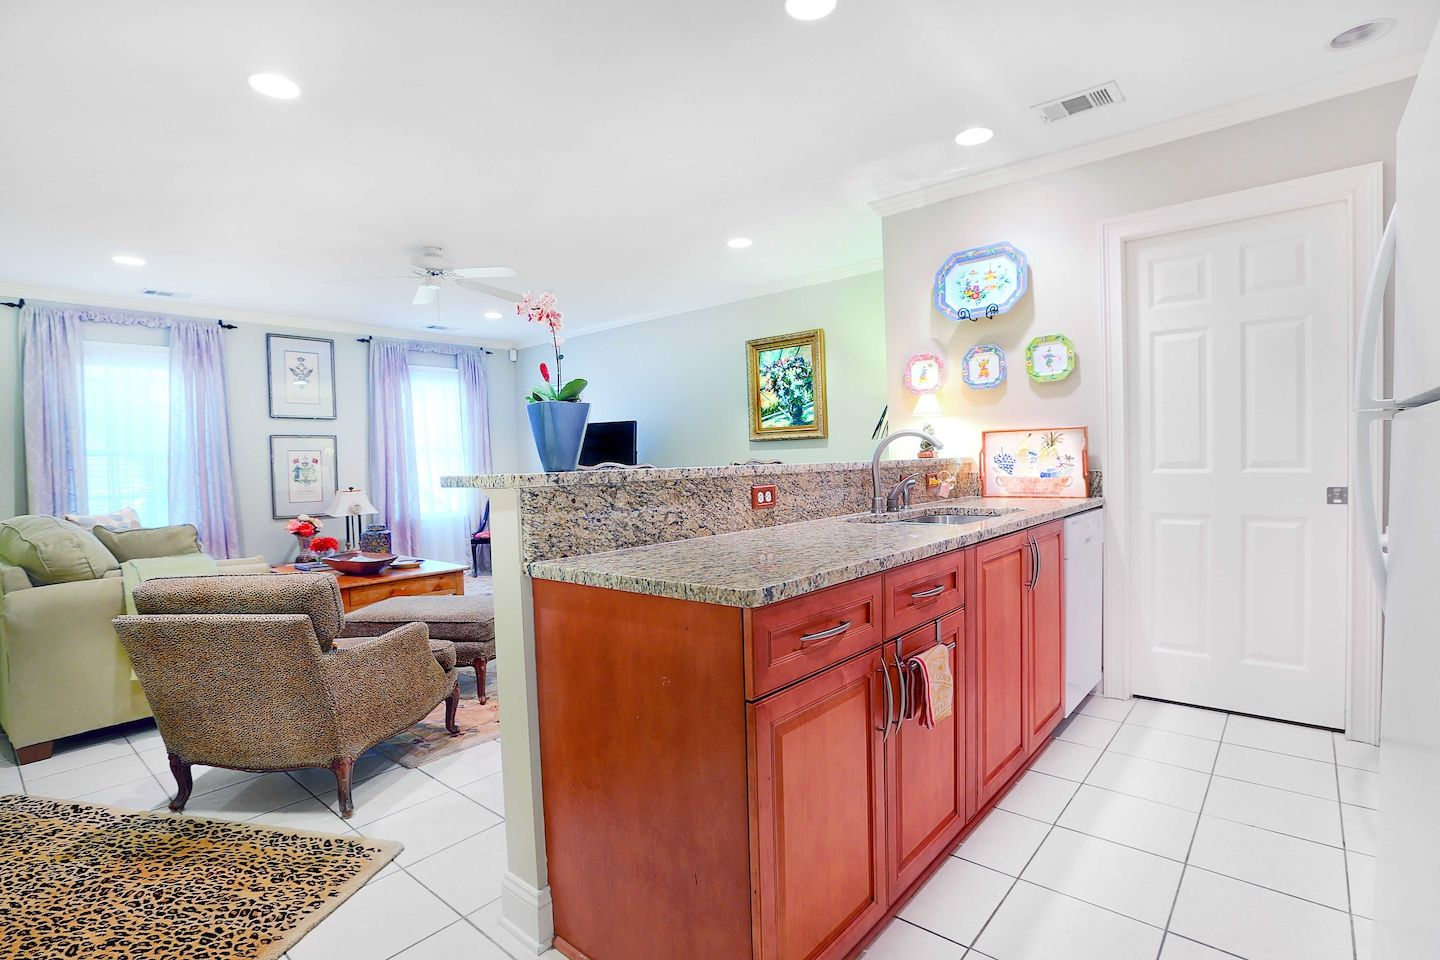 West Taylor Garden Apartment Ground Floor Apartment With 2 Bedrooms And 1 Bathroom Located In The Beautiful Histo Apartment Garden Home Decor Design District